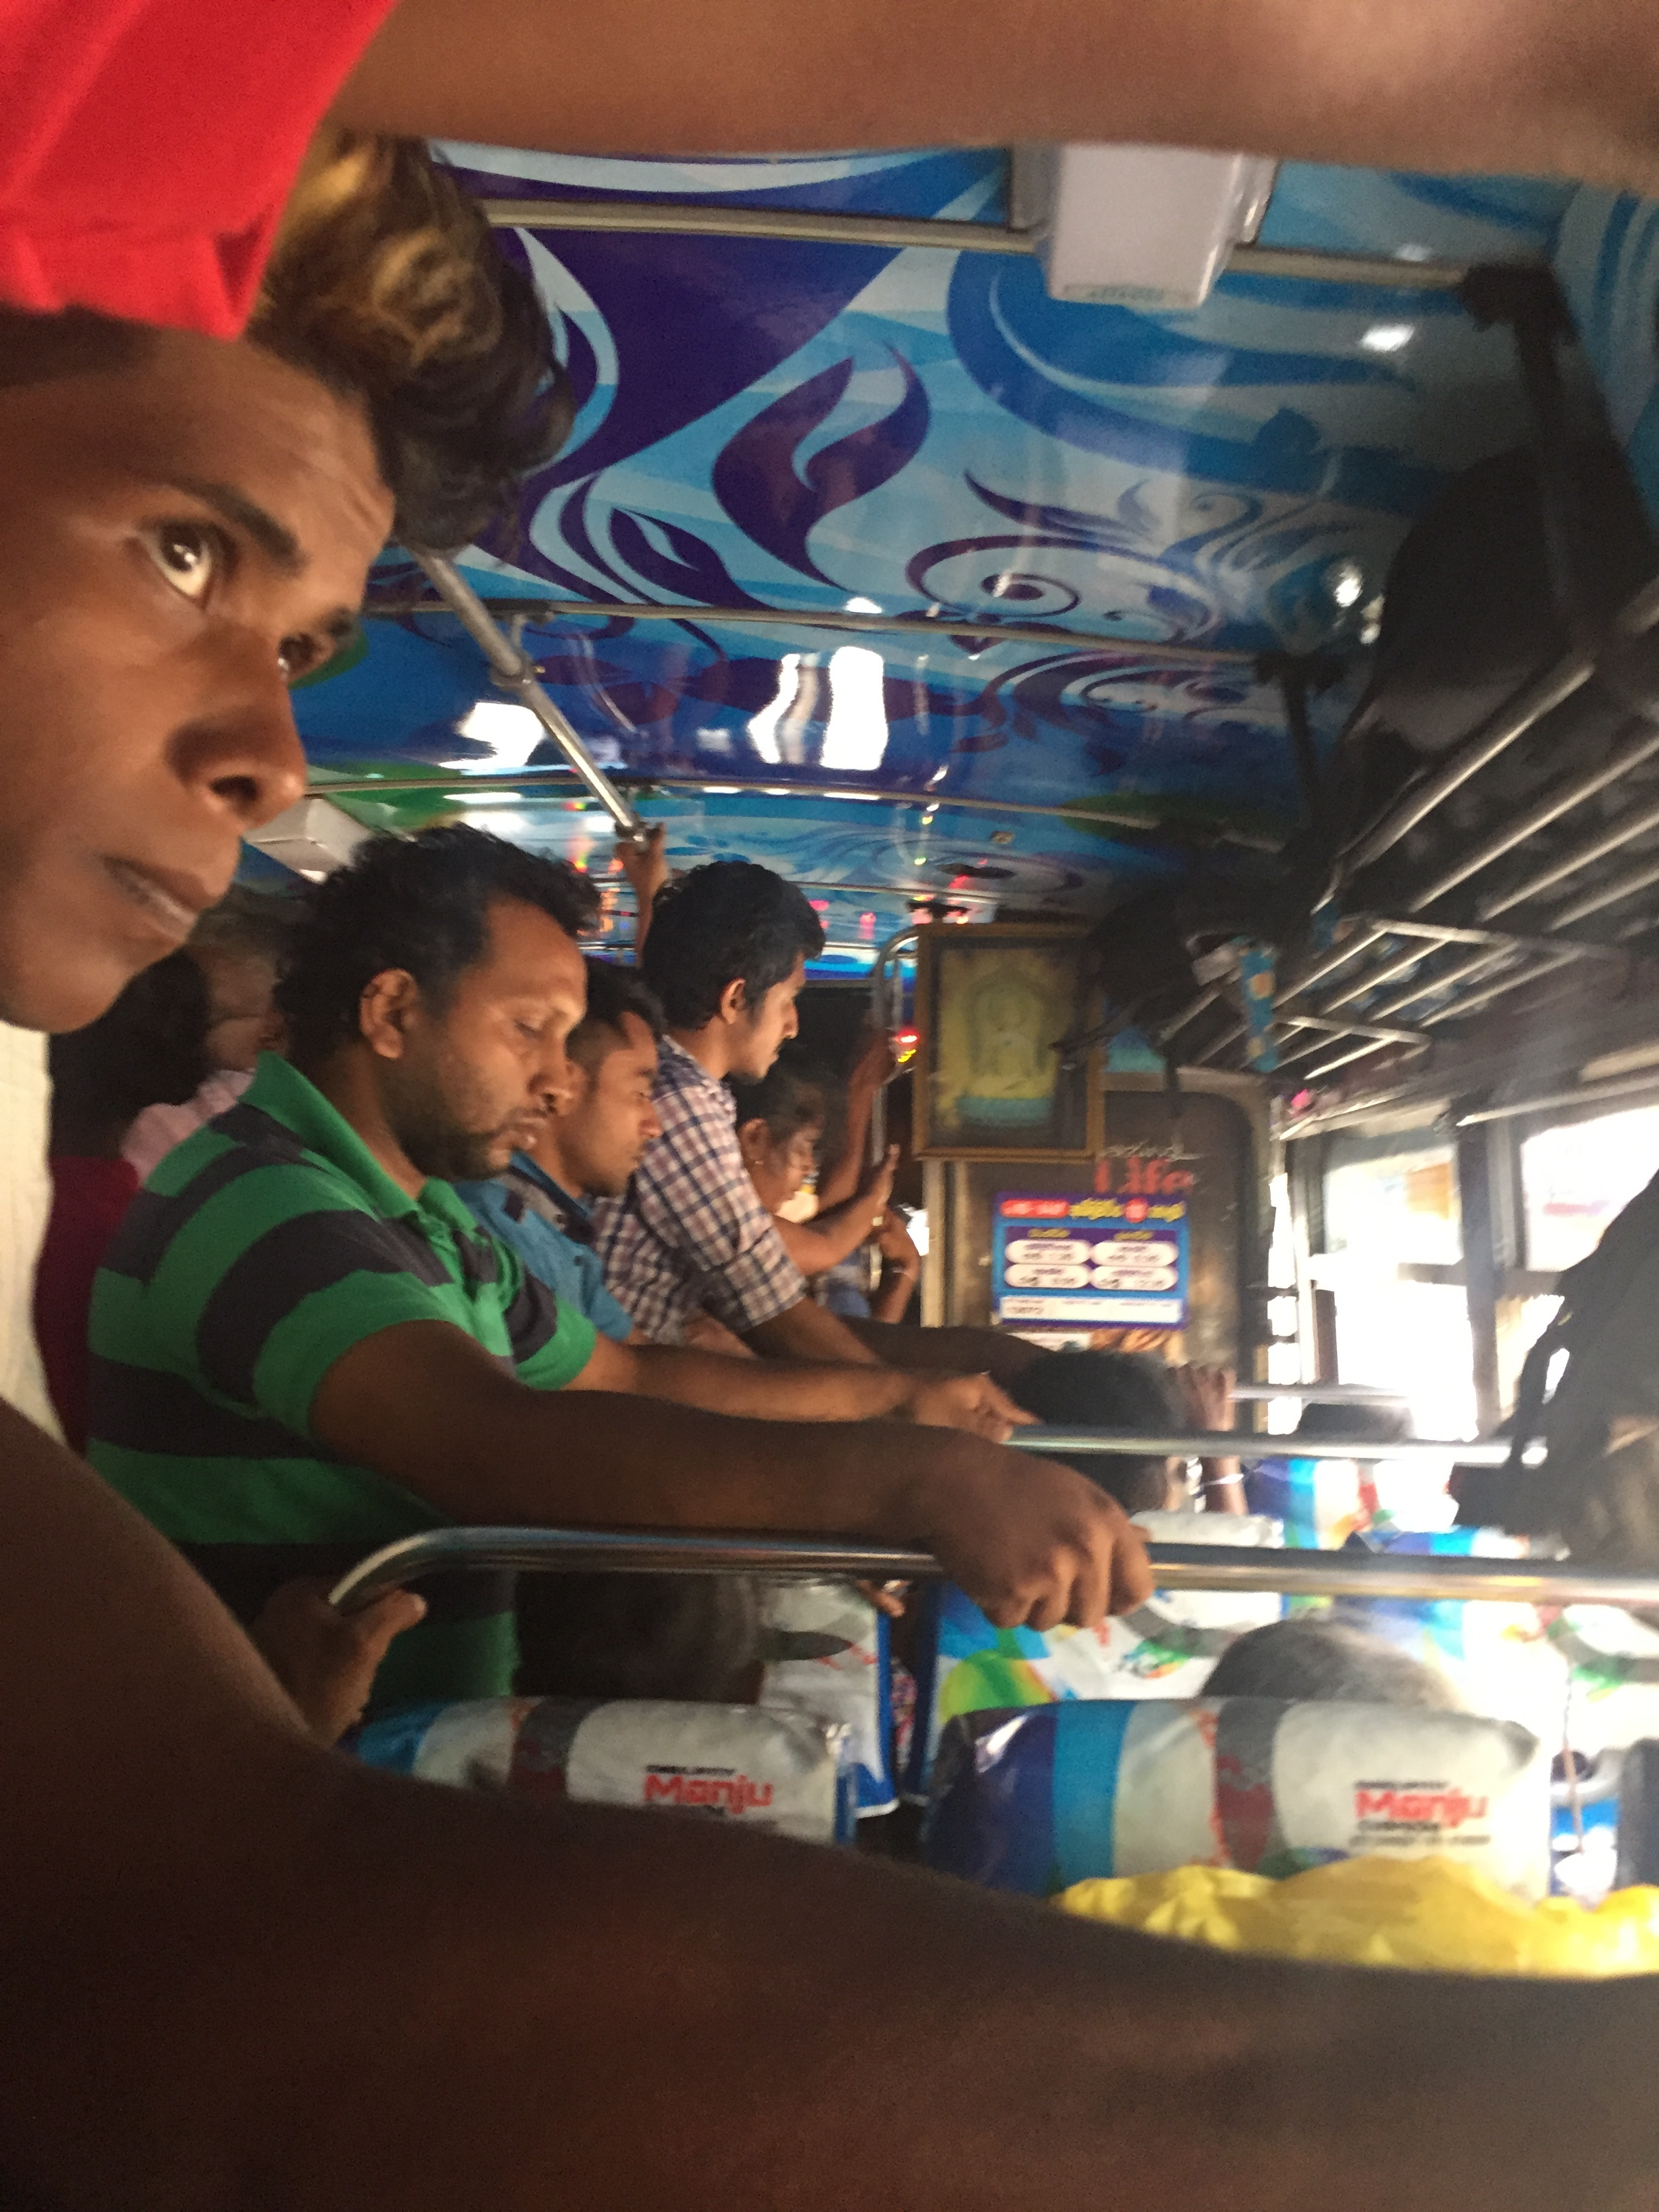 Not even standing room left on this 5-hour bus ride to Colombo.